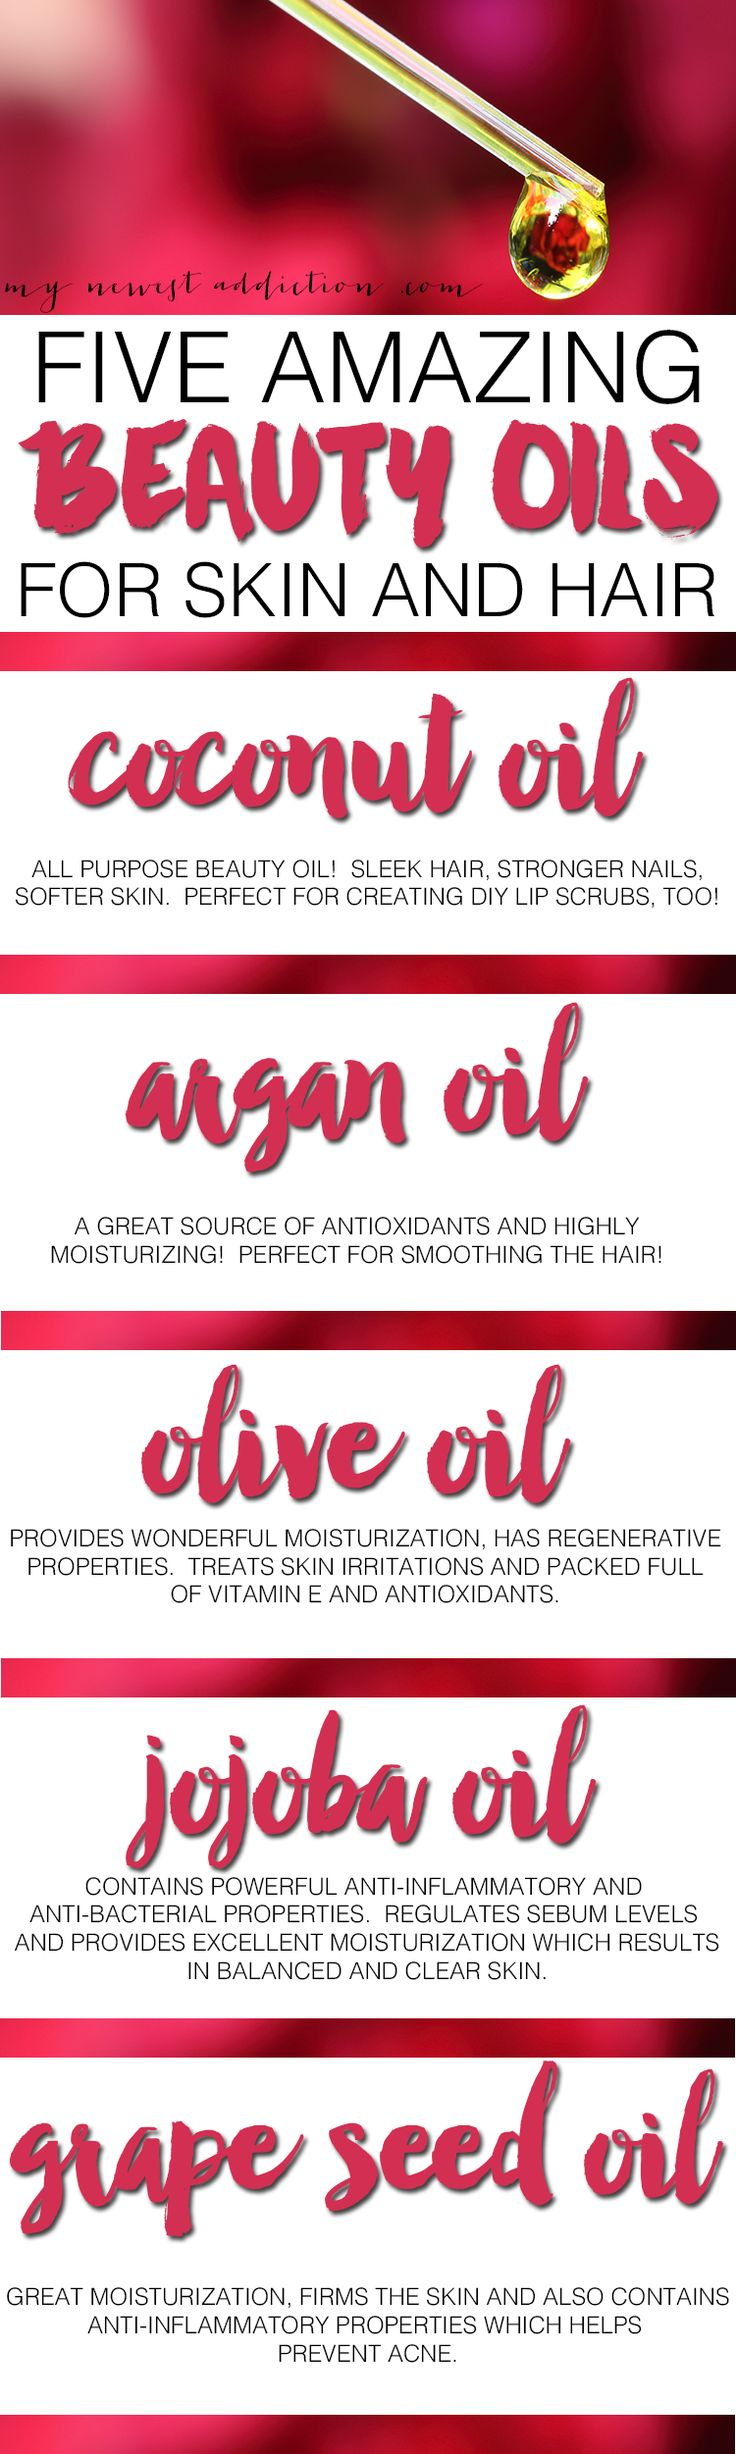 5 AMAZING BEAUTY OILS FOR SKIN AND HAIR! Learn what they are for and how to use them!